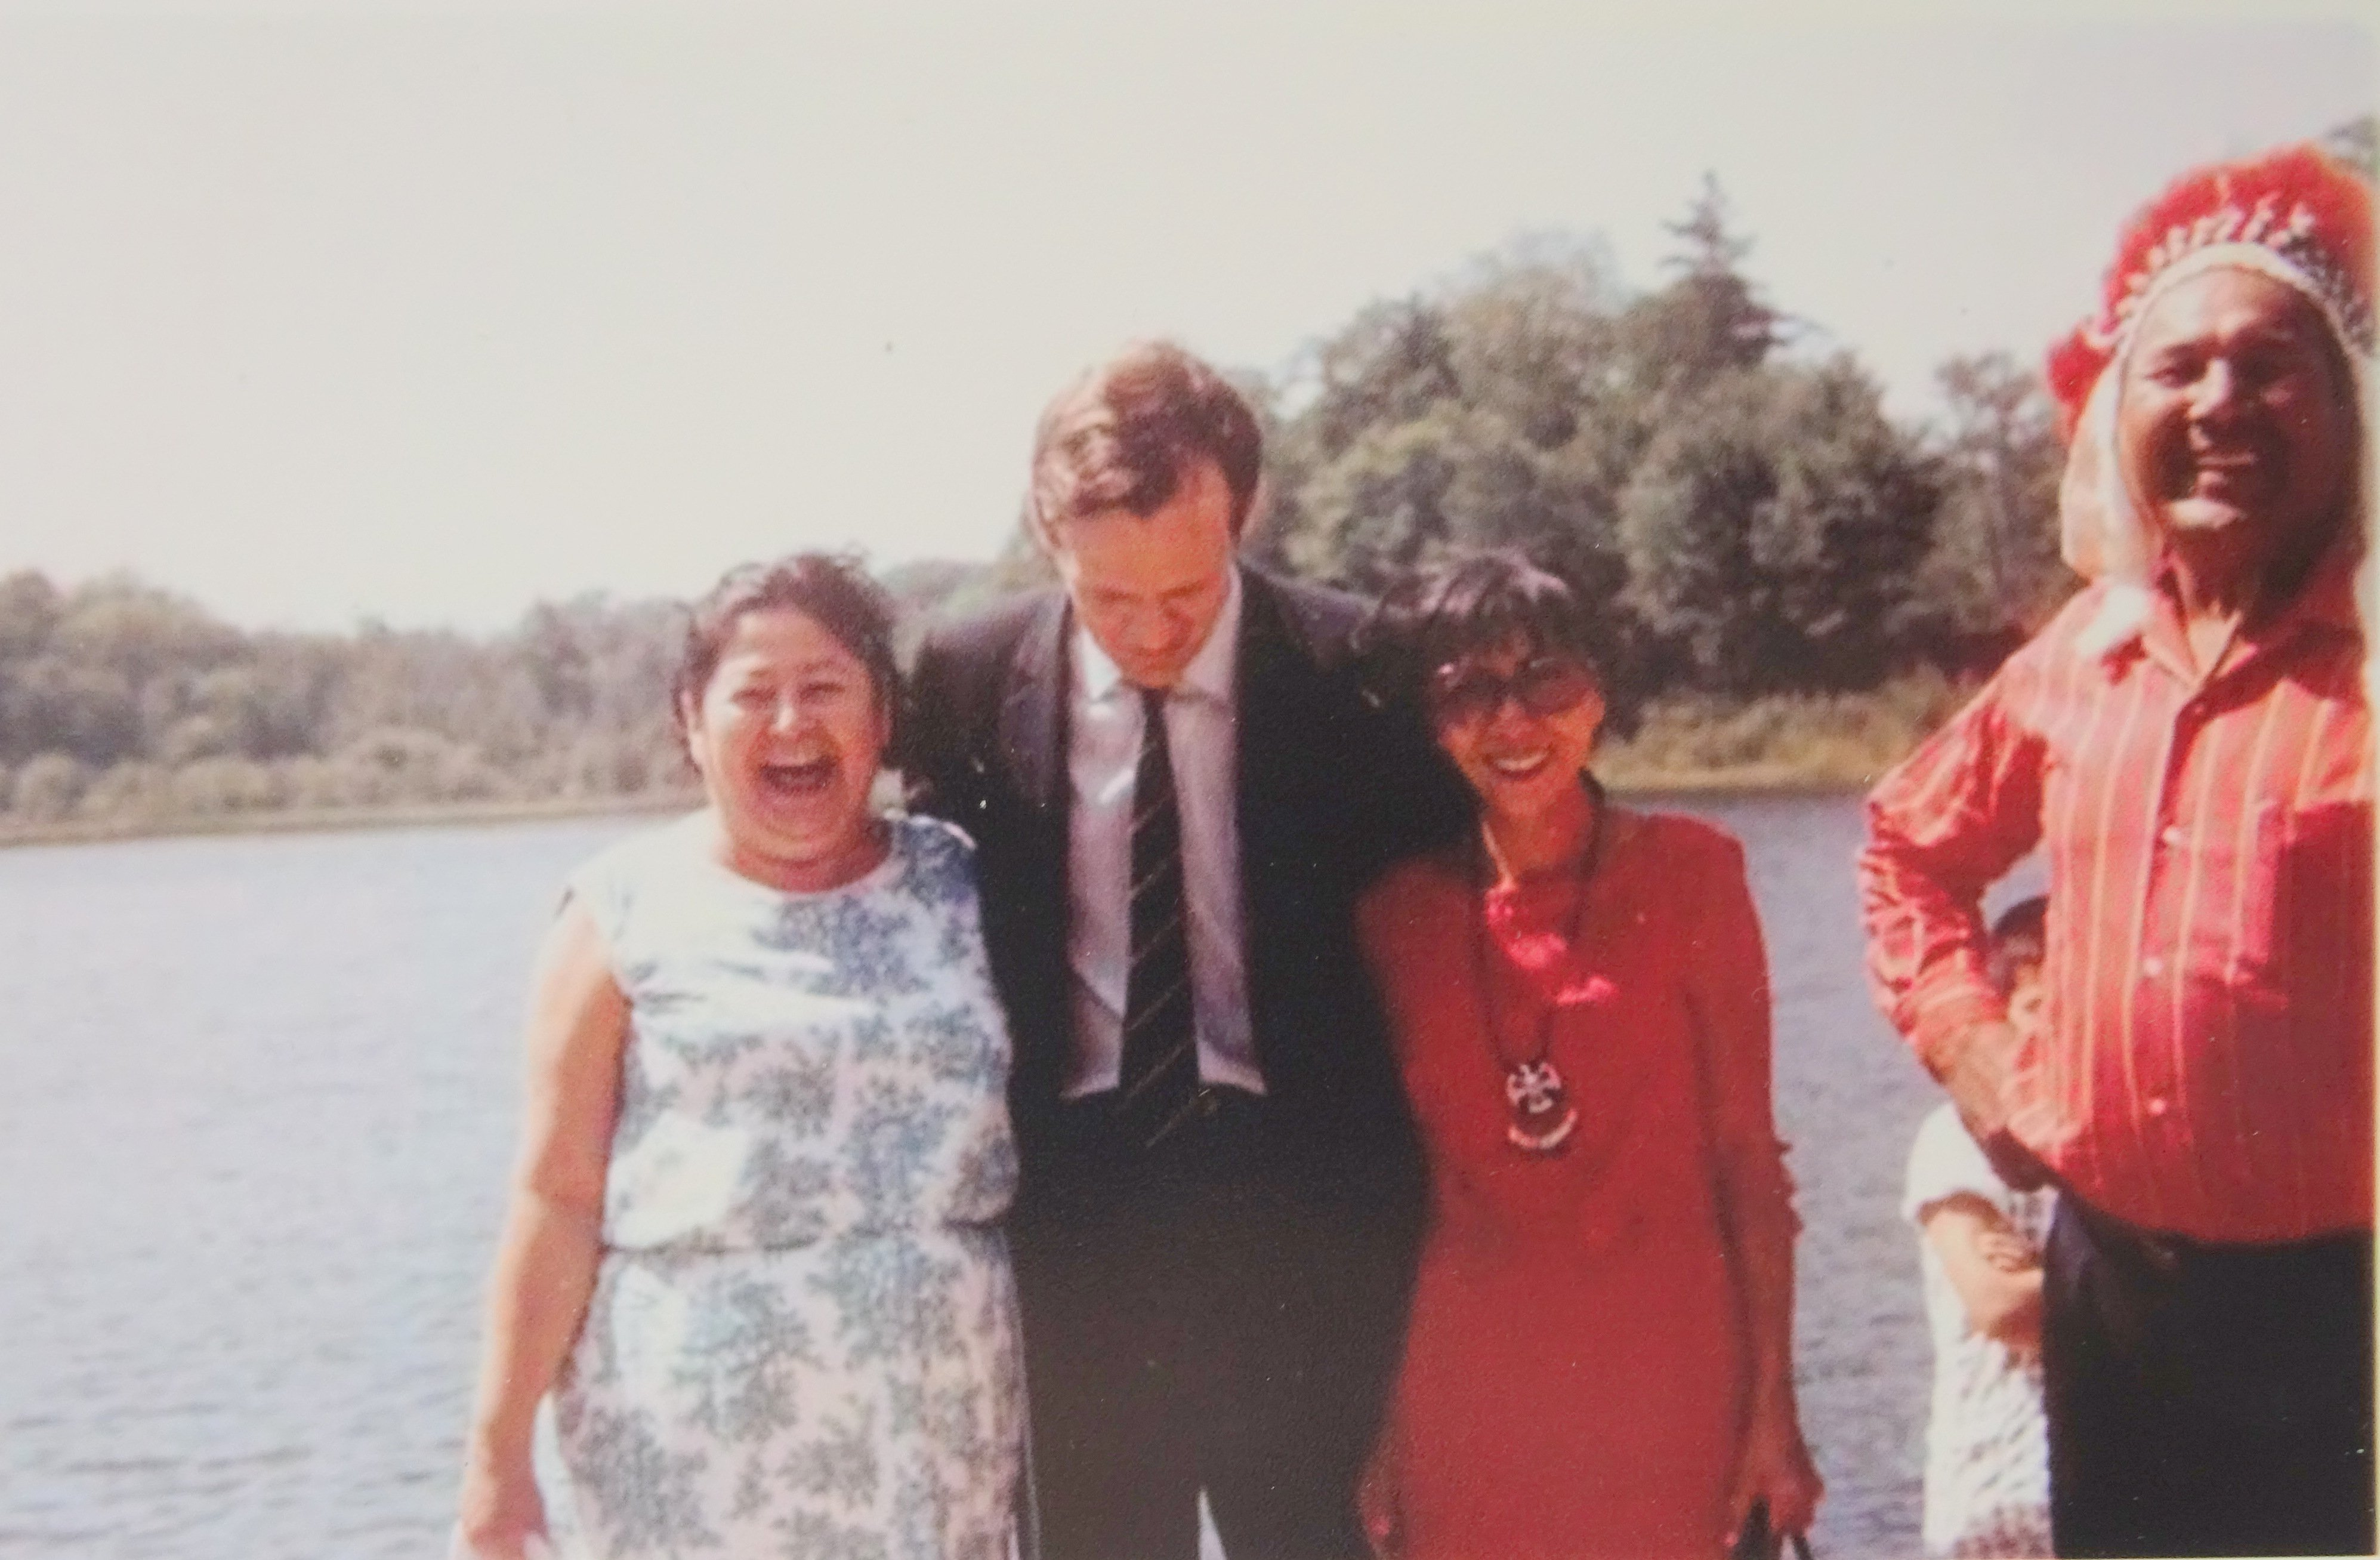 Hettie Sylvester, Jean Chretien (Minister of Indian Affairs and Northern Development), Irene and Chief of Christian Island, circa 1969. Photo taken by Mildred Redmond